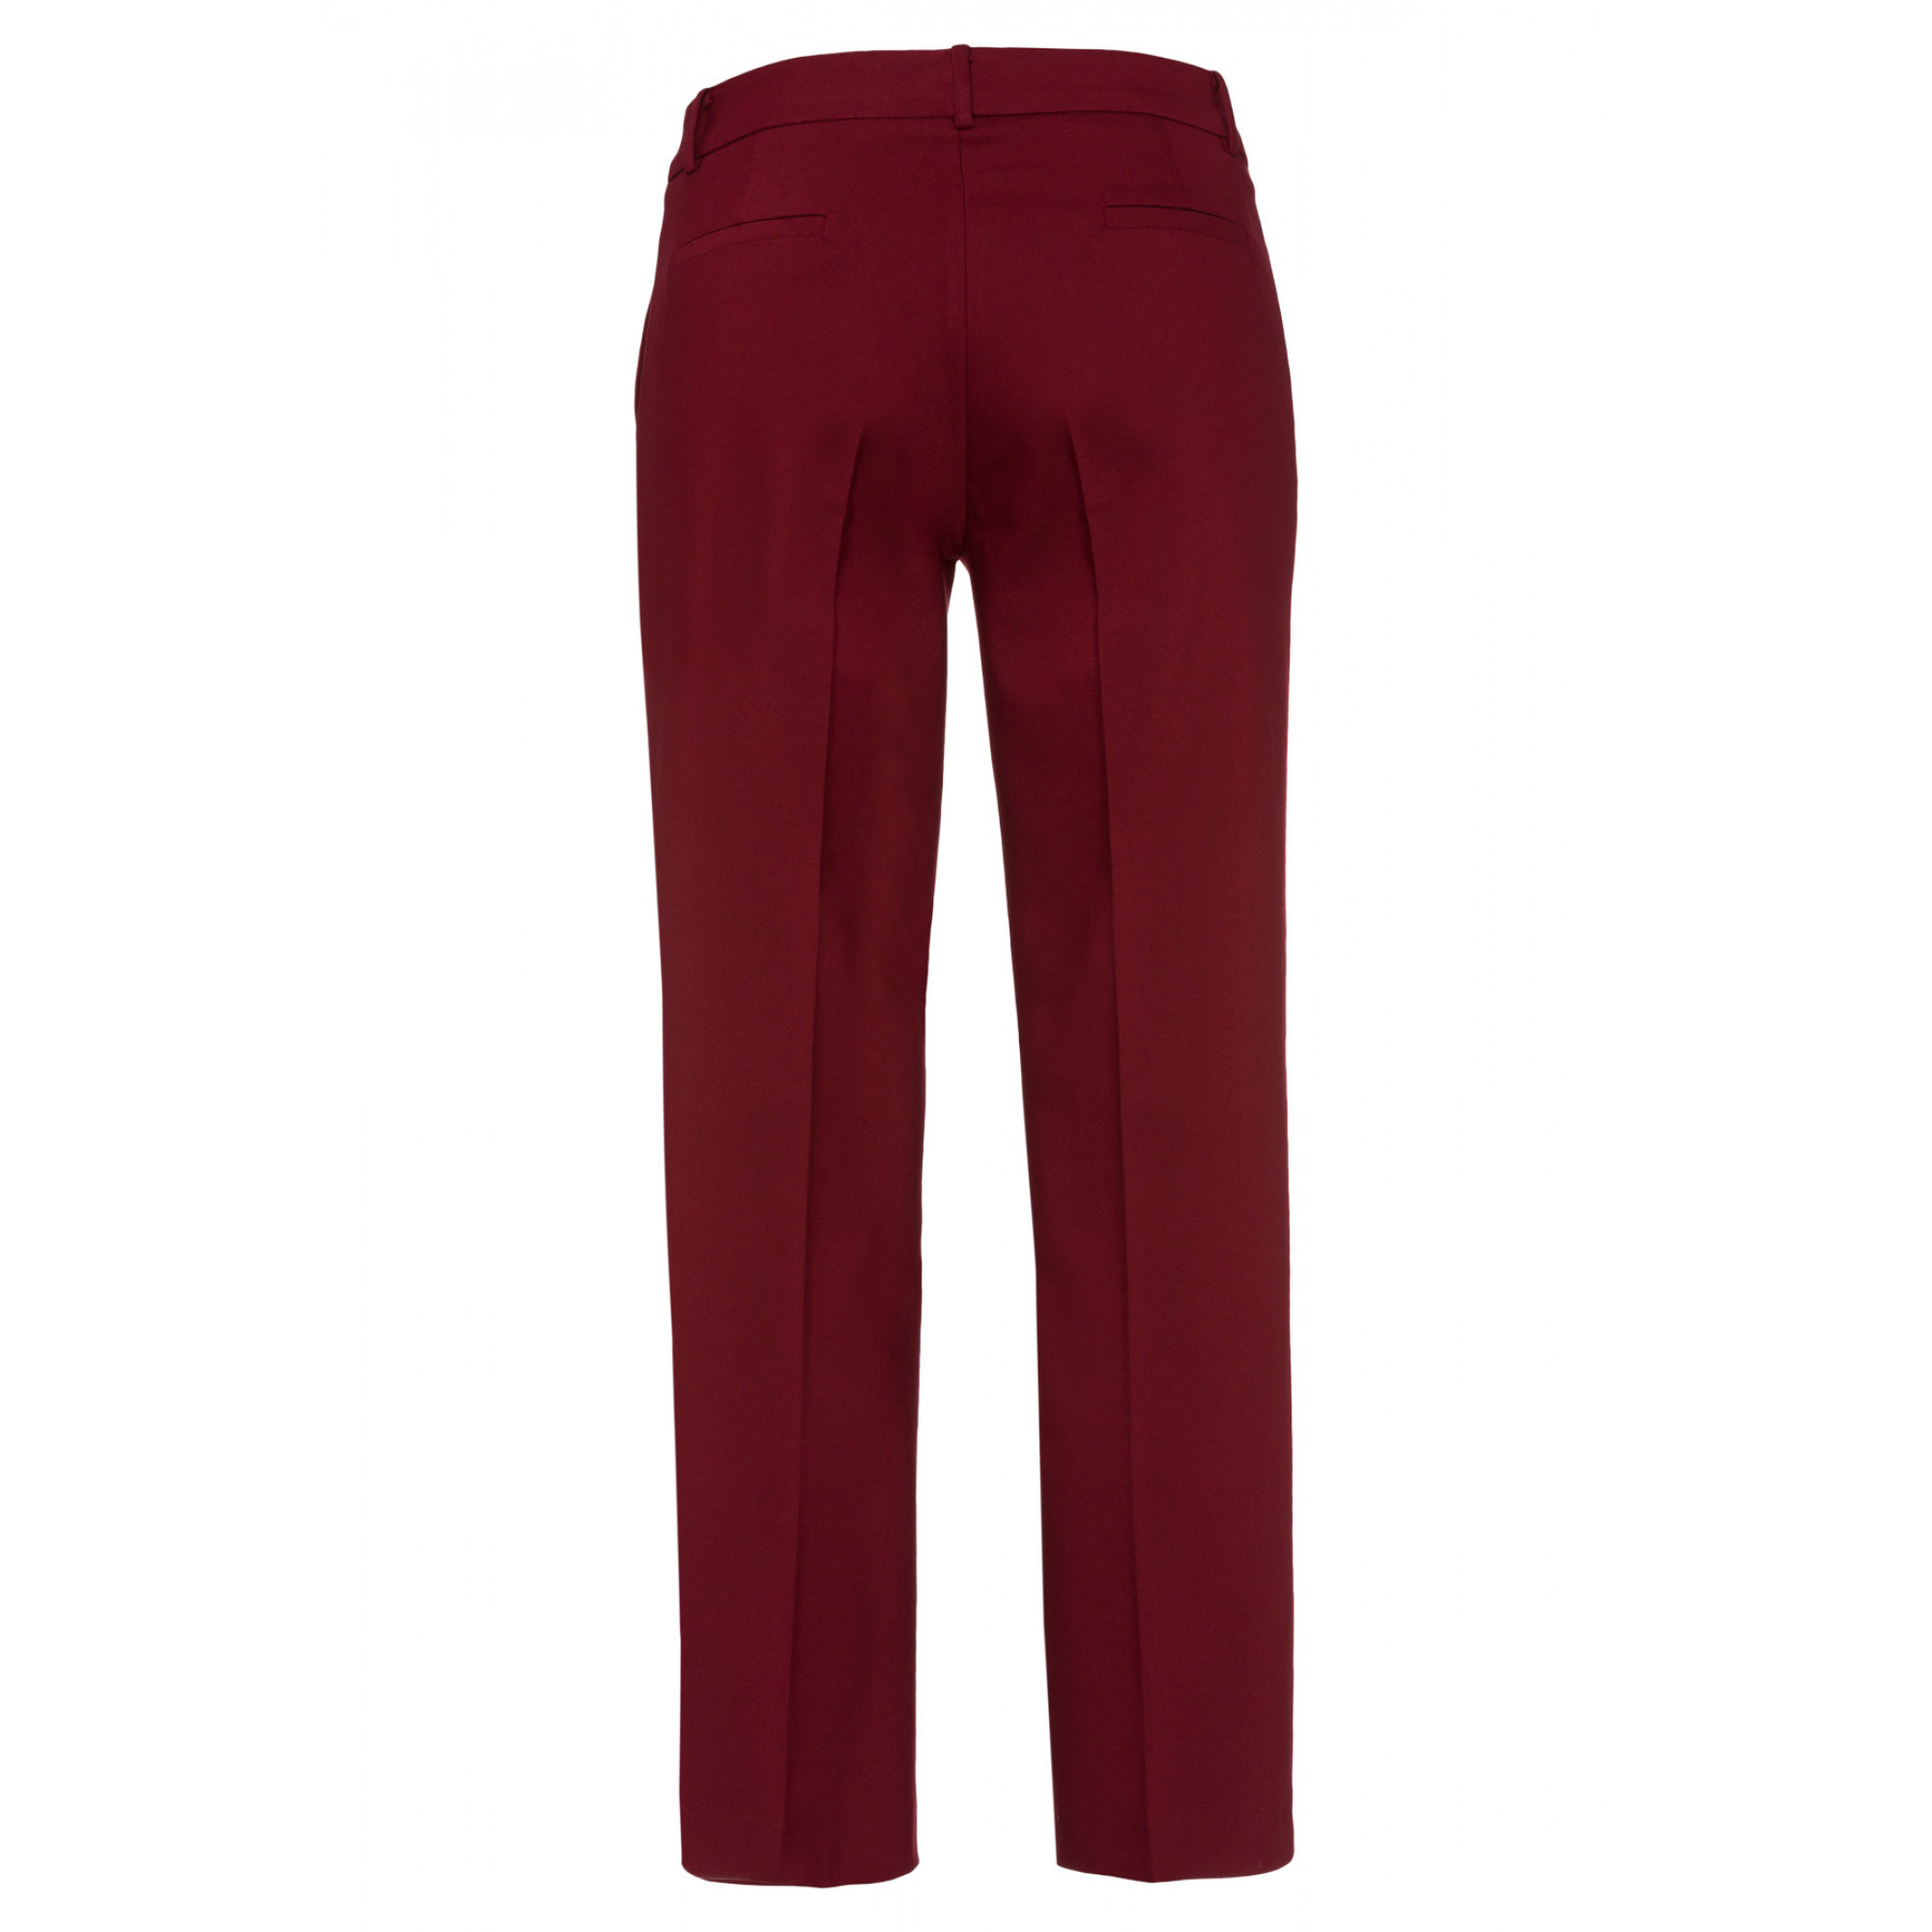 Hose, wine red, Hedy 91084052-0548 2